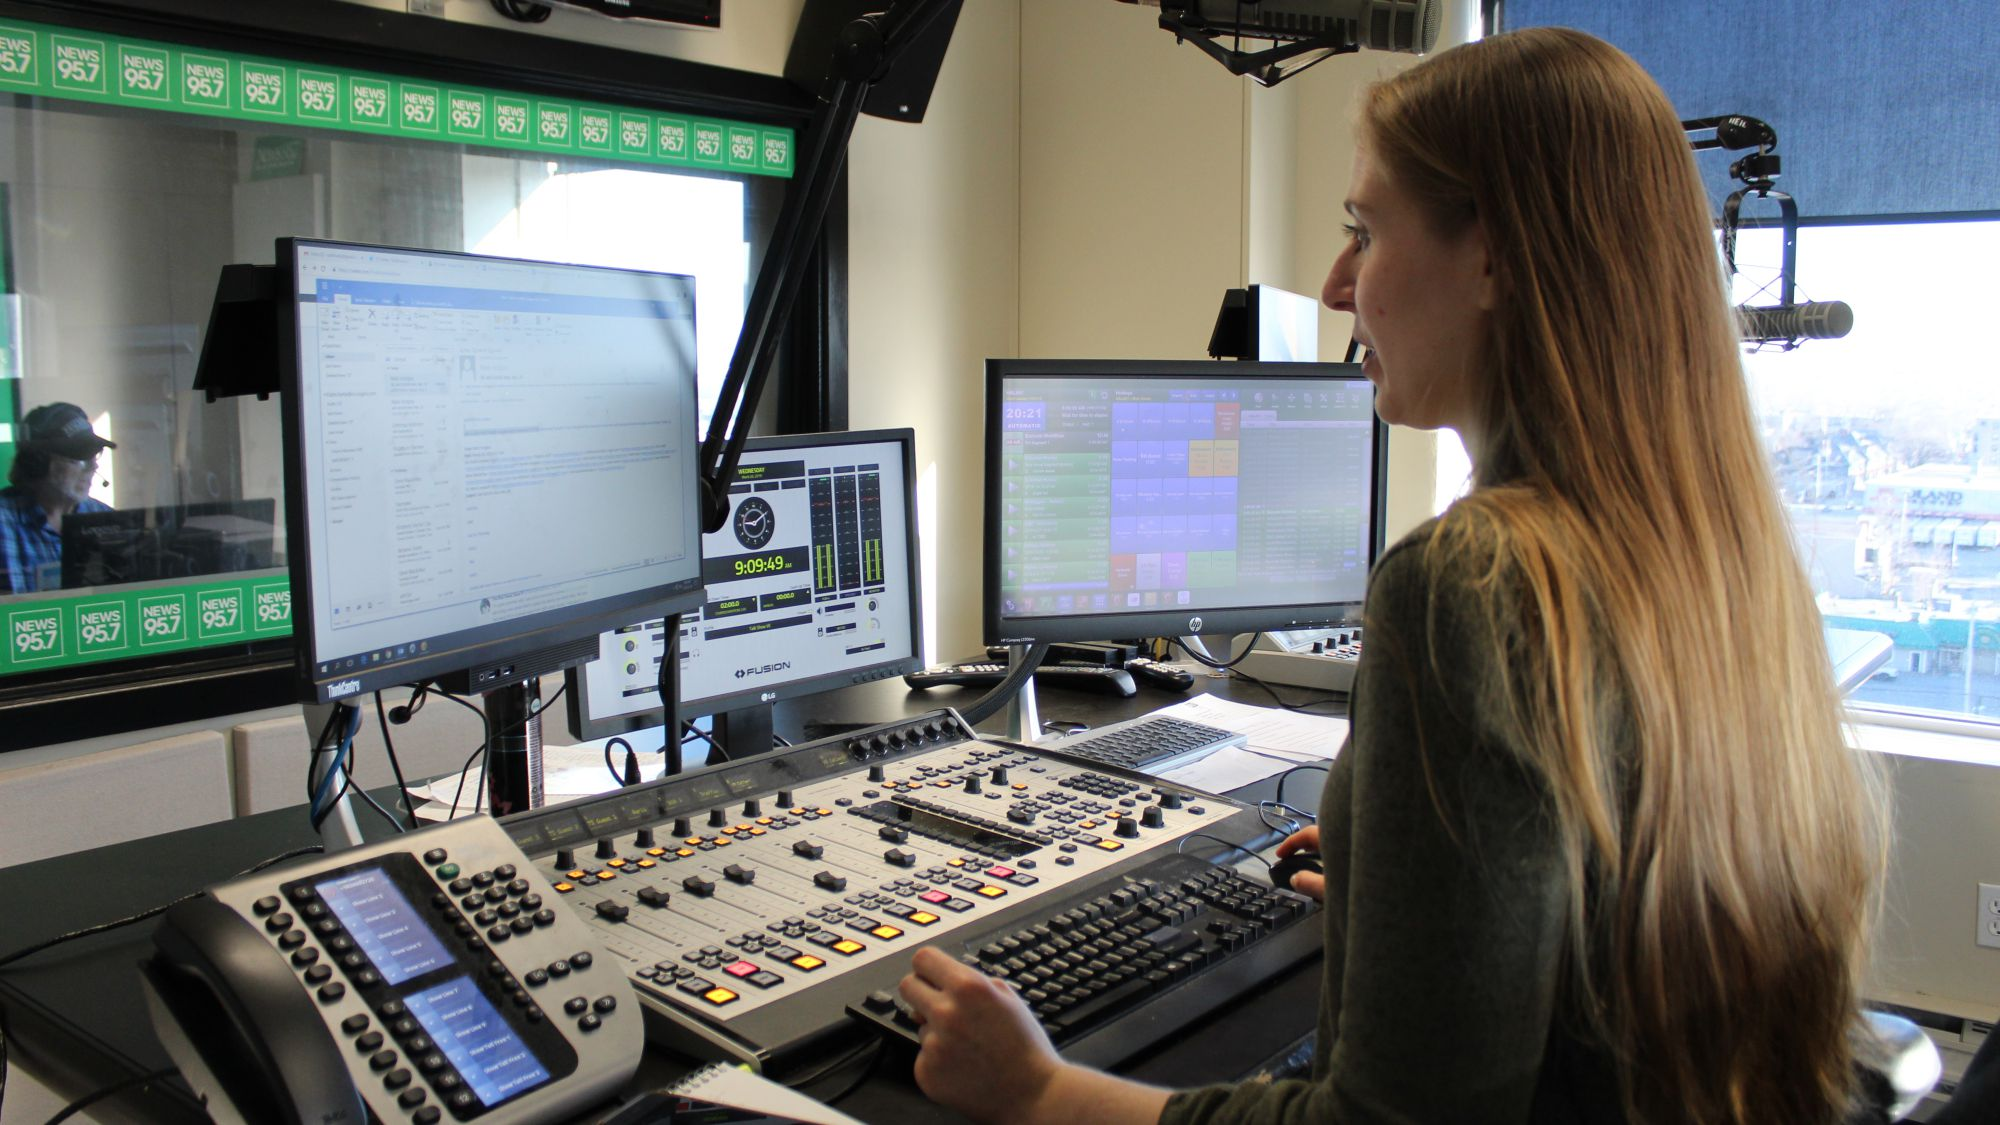 Katie Hartai stands at her desk in the radio room at News 95.7. In the background Rick Howe can be seen talking on the radio.